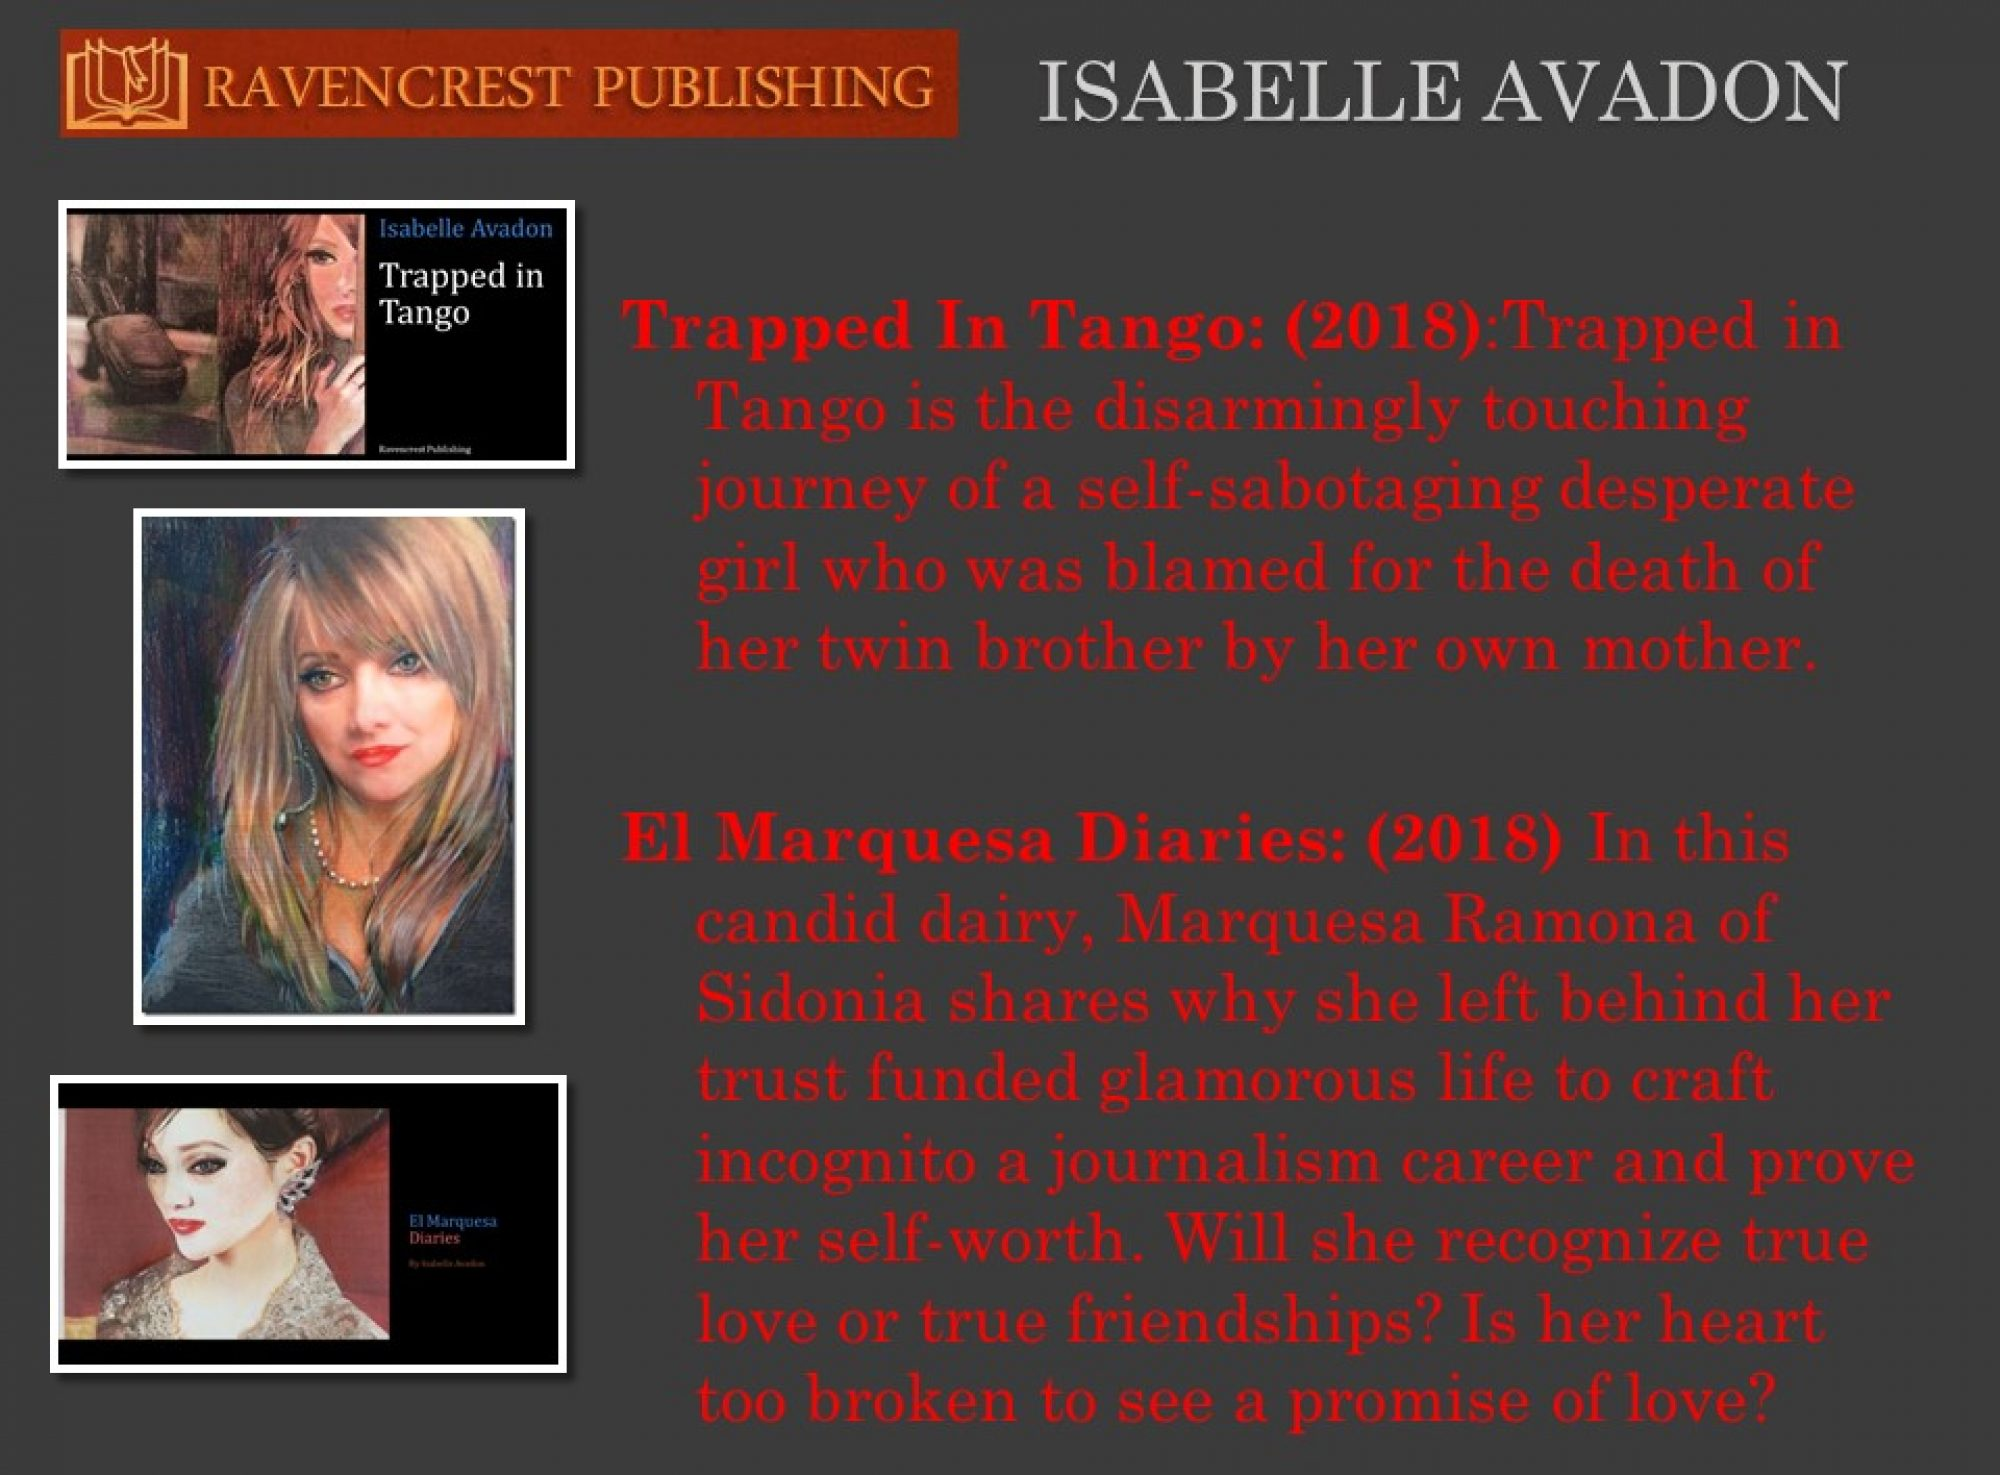 Author Isabelle Avadon